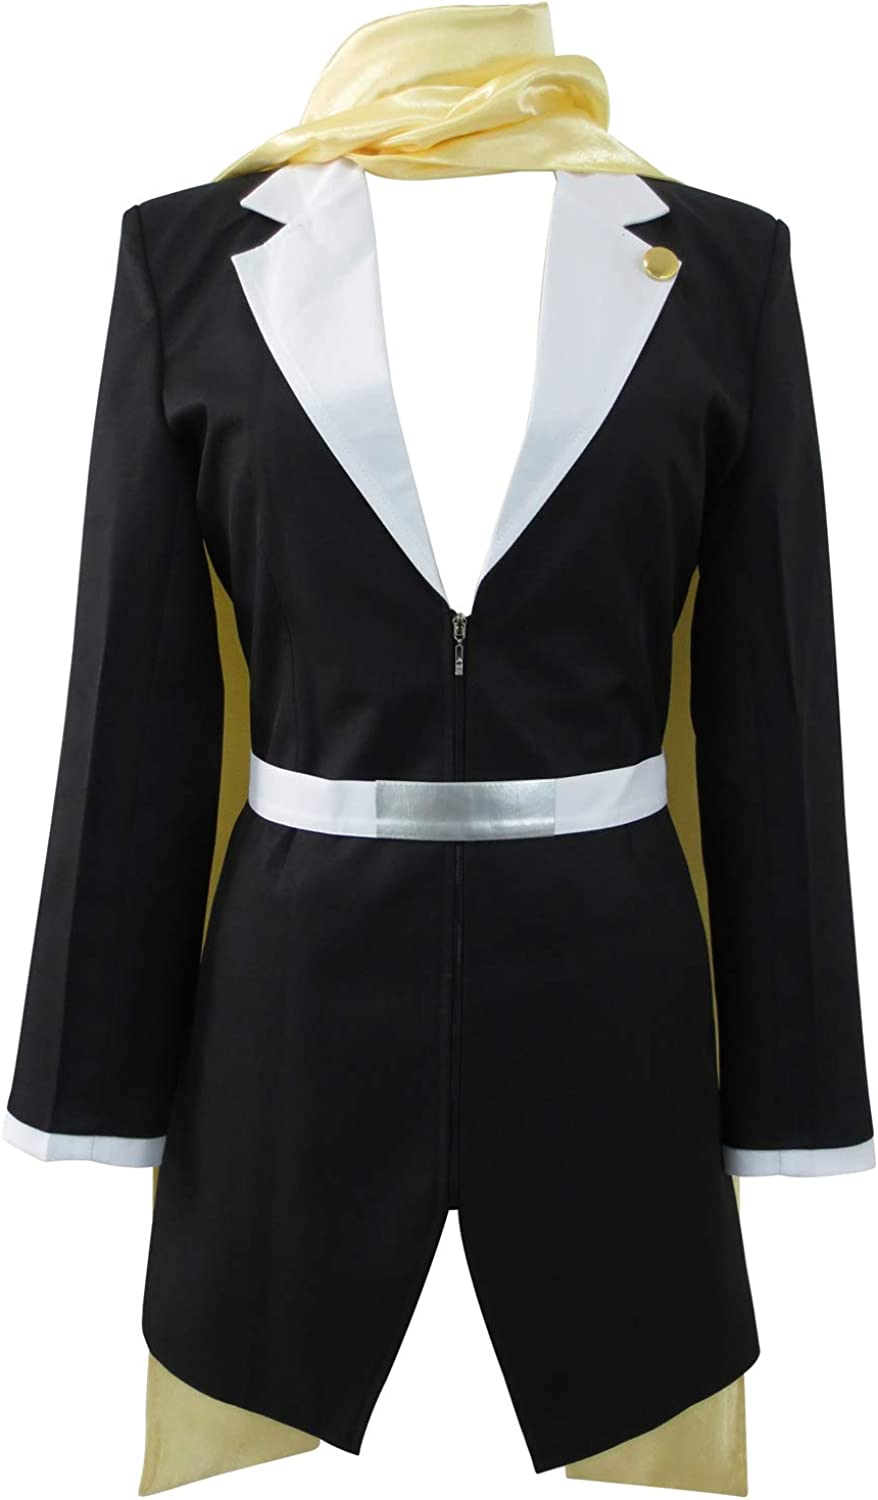 Al Over item handling ☆ sold out. MiaFey Ayasato Outfit Dress Cosplay Costume Game